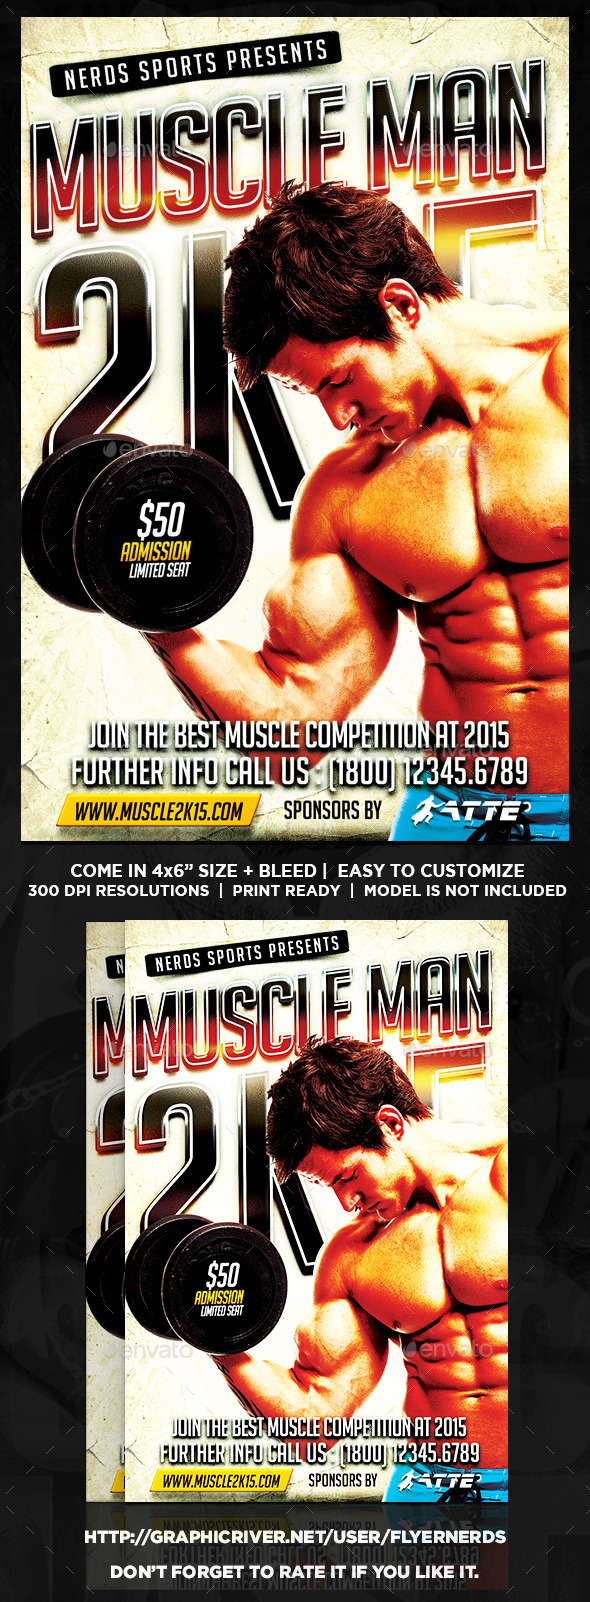 Muscle Man 2K15 Sports Flyer - Sports Events